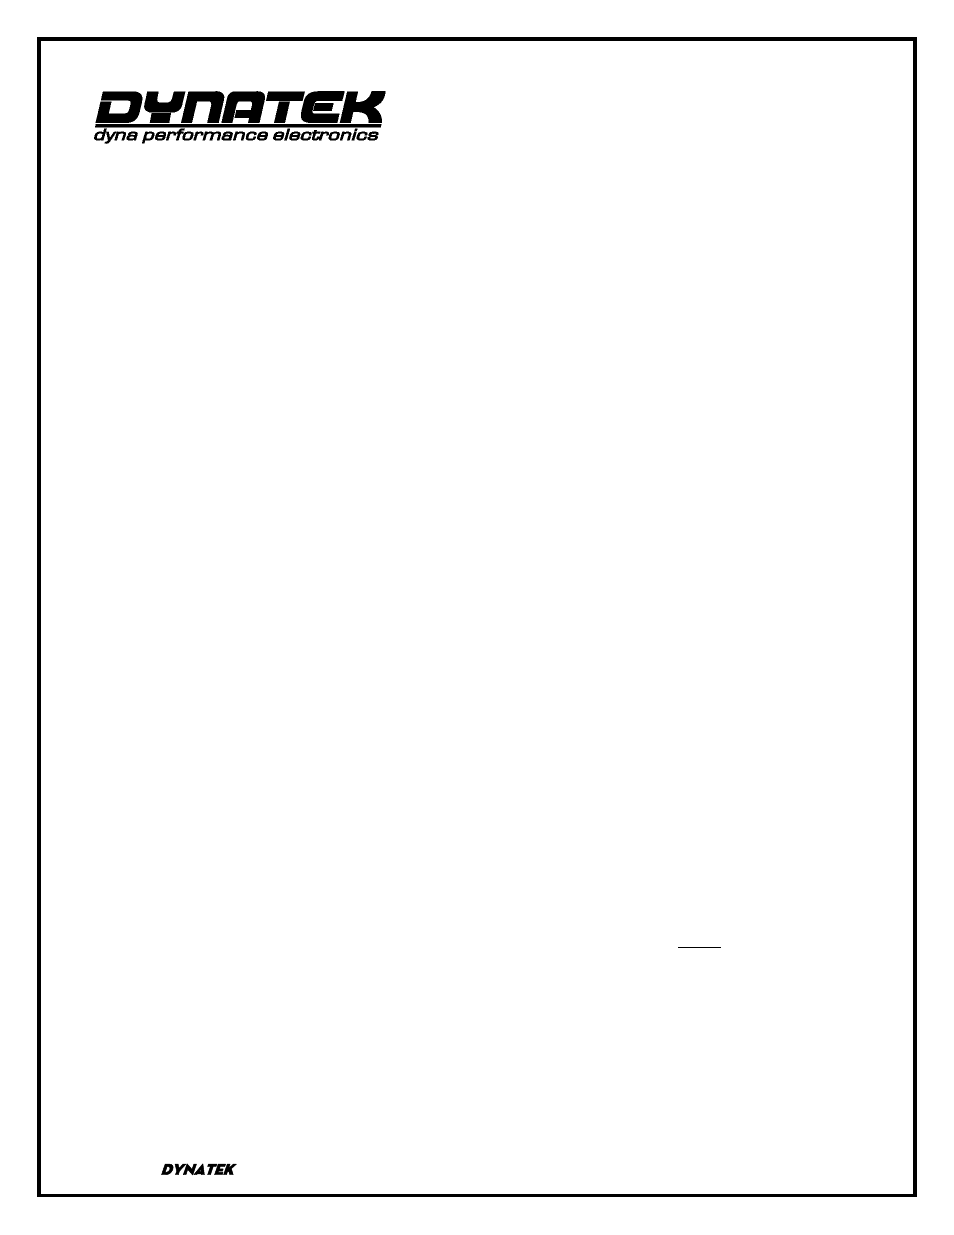 Two Brothers Racing Dyna Fs Ignition 1999 2004 Honda Trx400ex User 400ex Wiring Diagram Manual 2 Pages